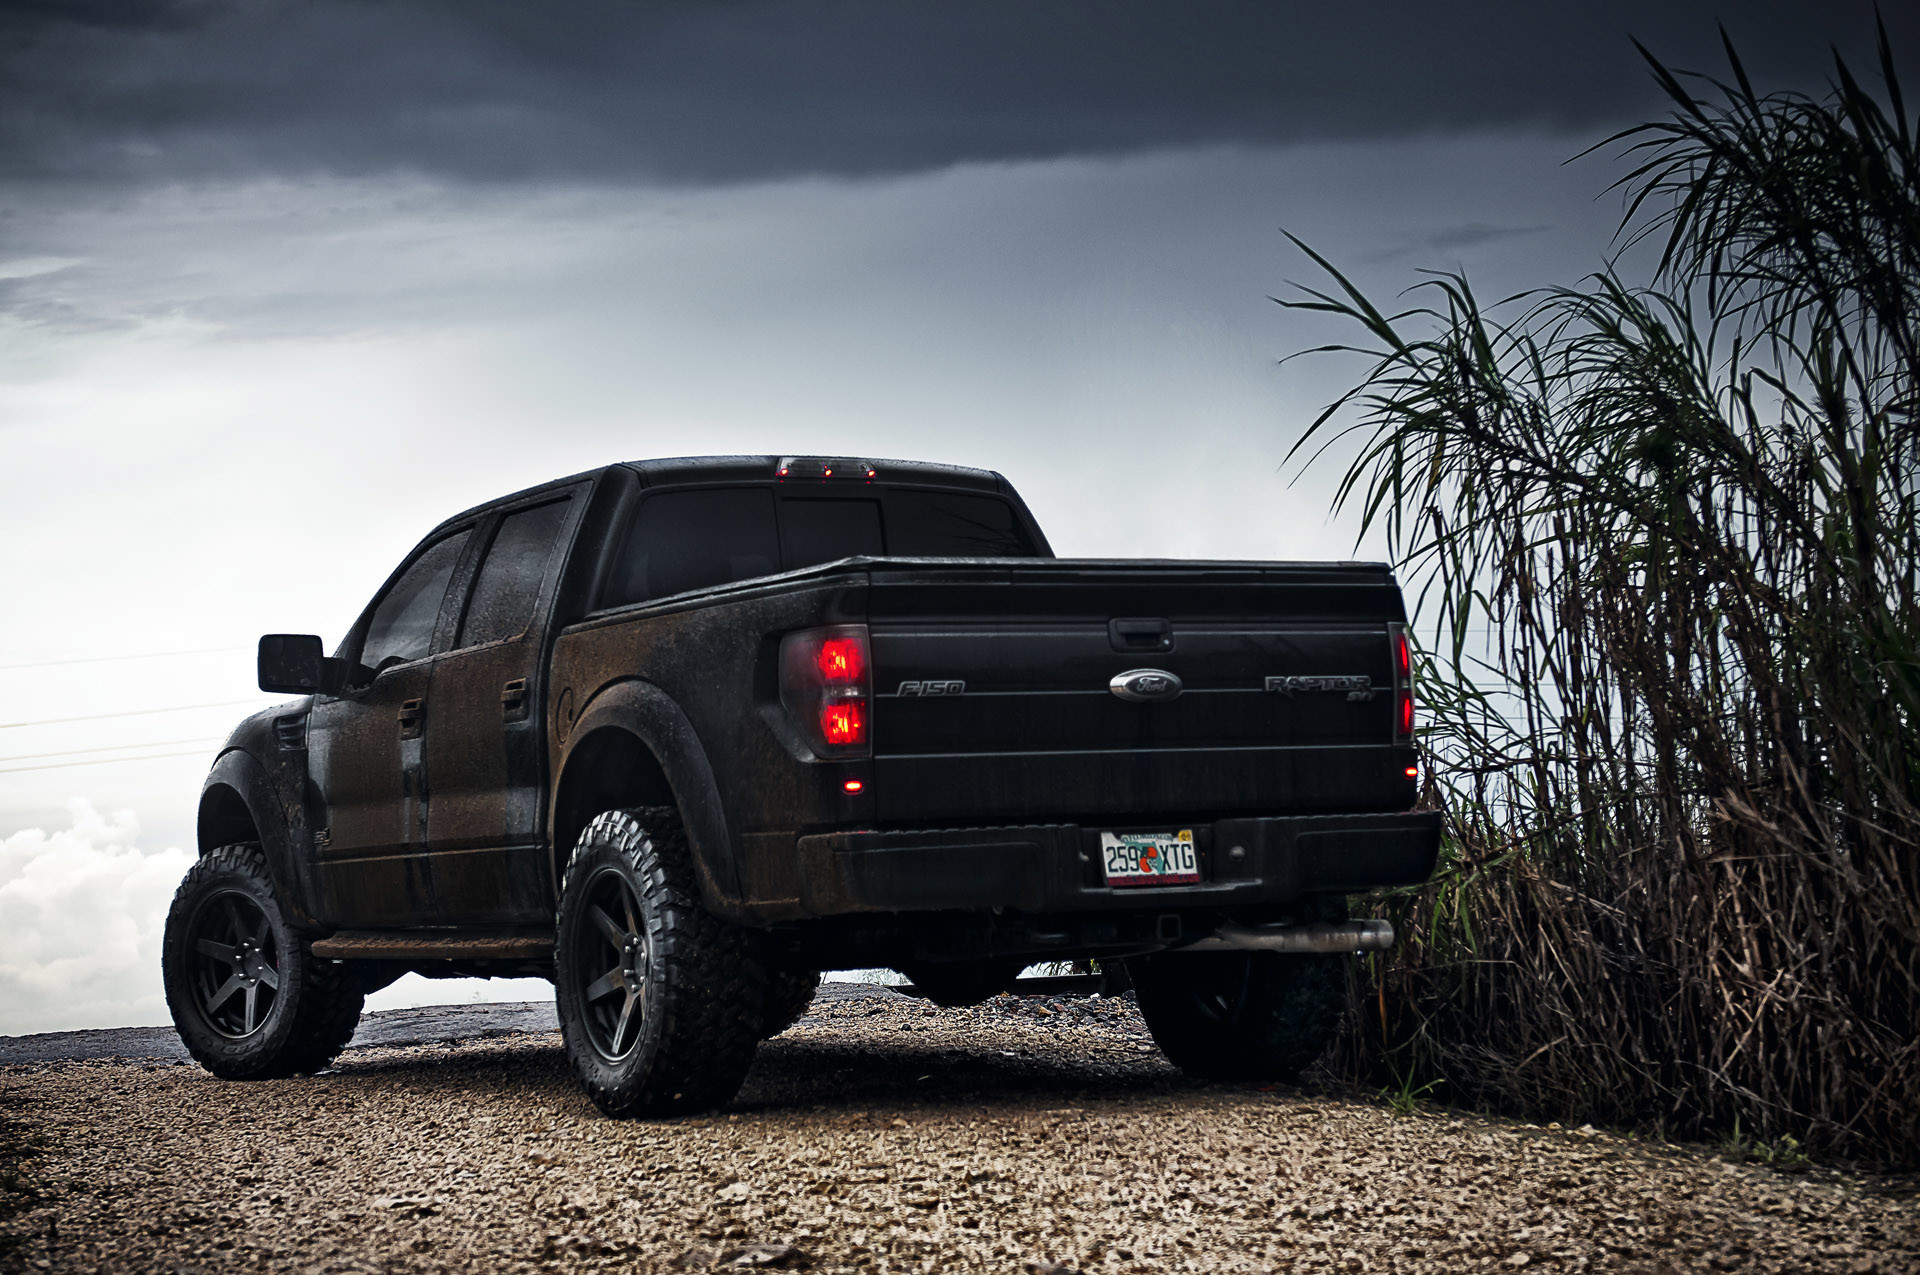 1920x1275 Ford Raptor HD Wallpapers For Desktop.